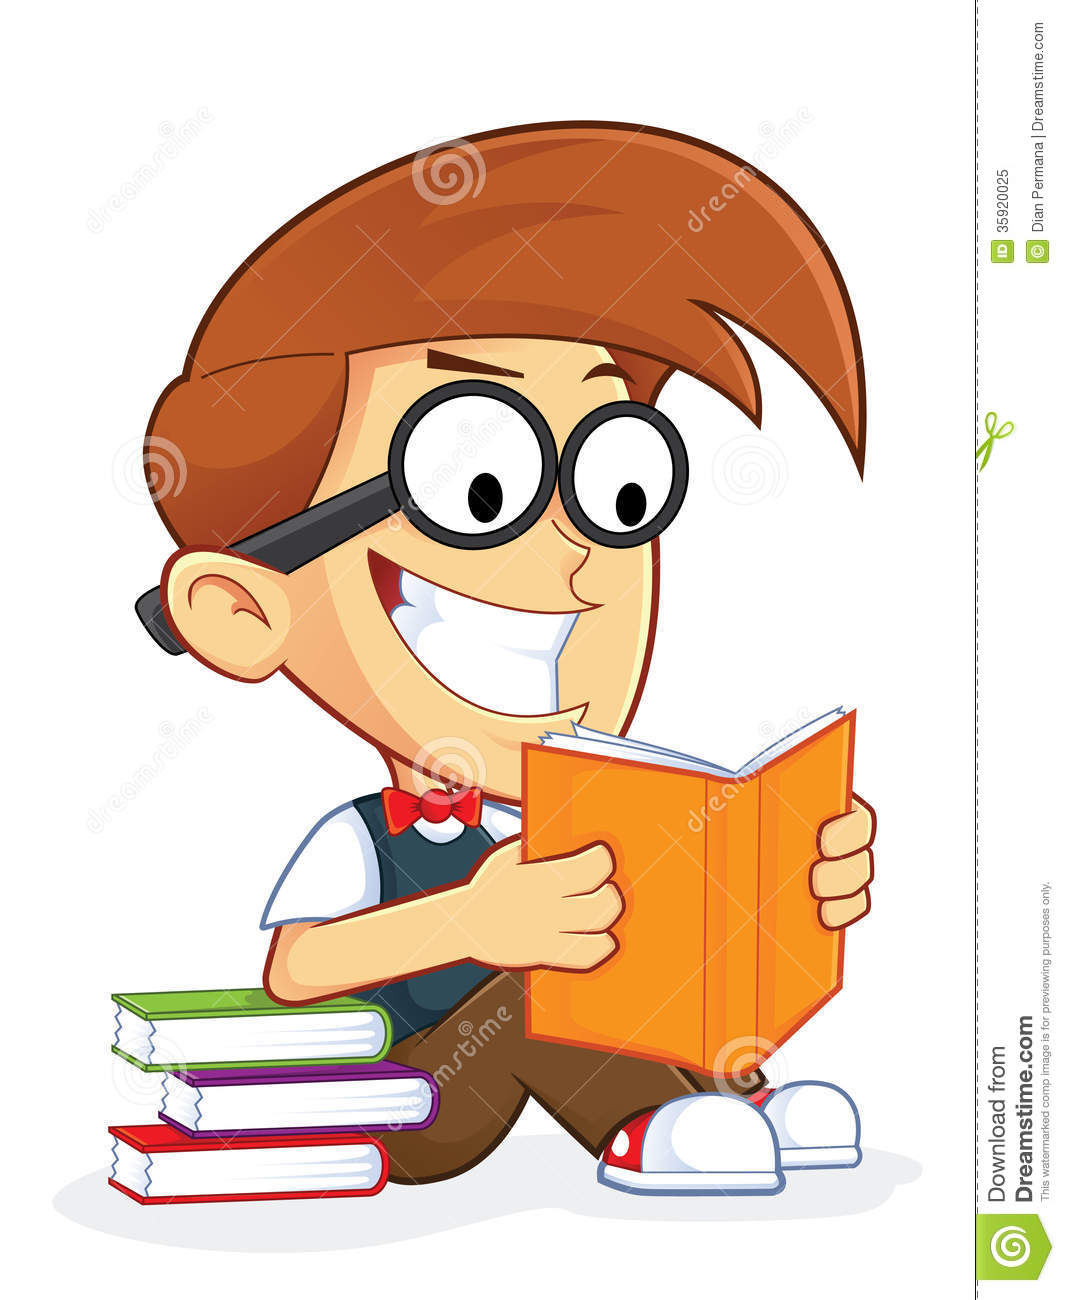 Cartoon Characters Reader : Nerd geek reading book royalty clipart panda free